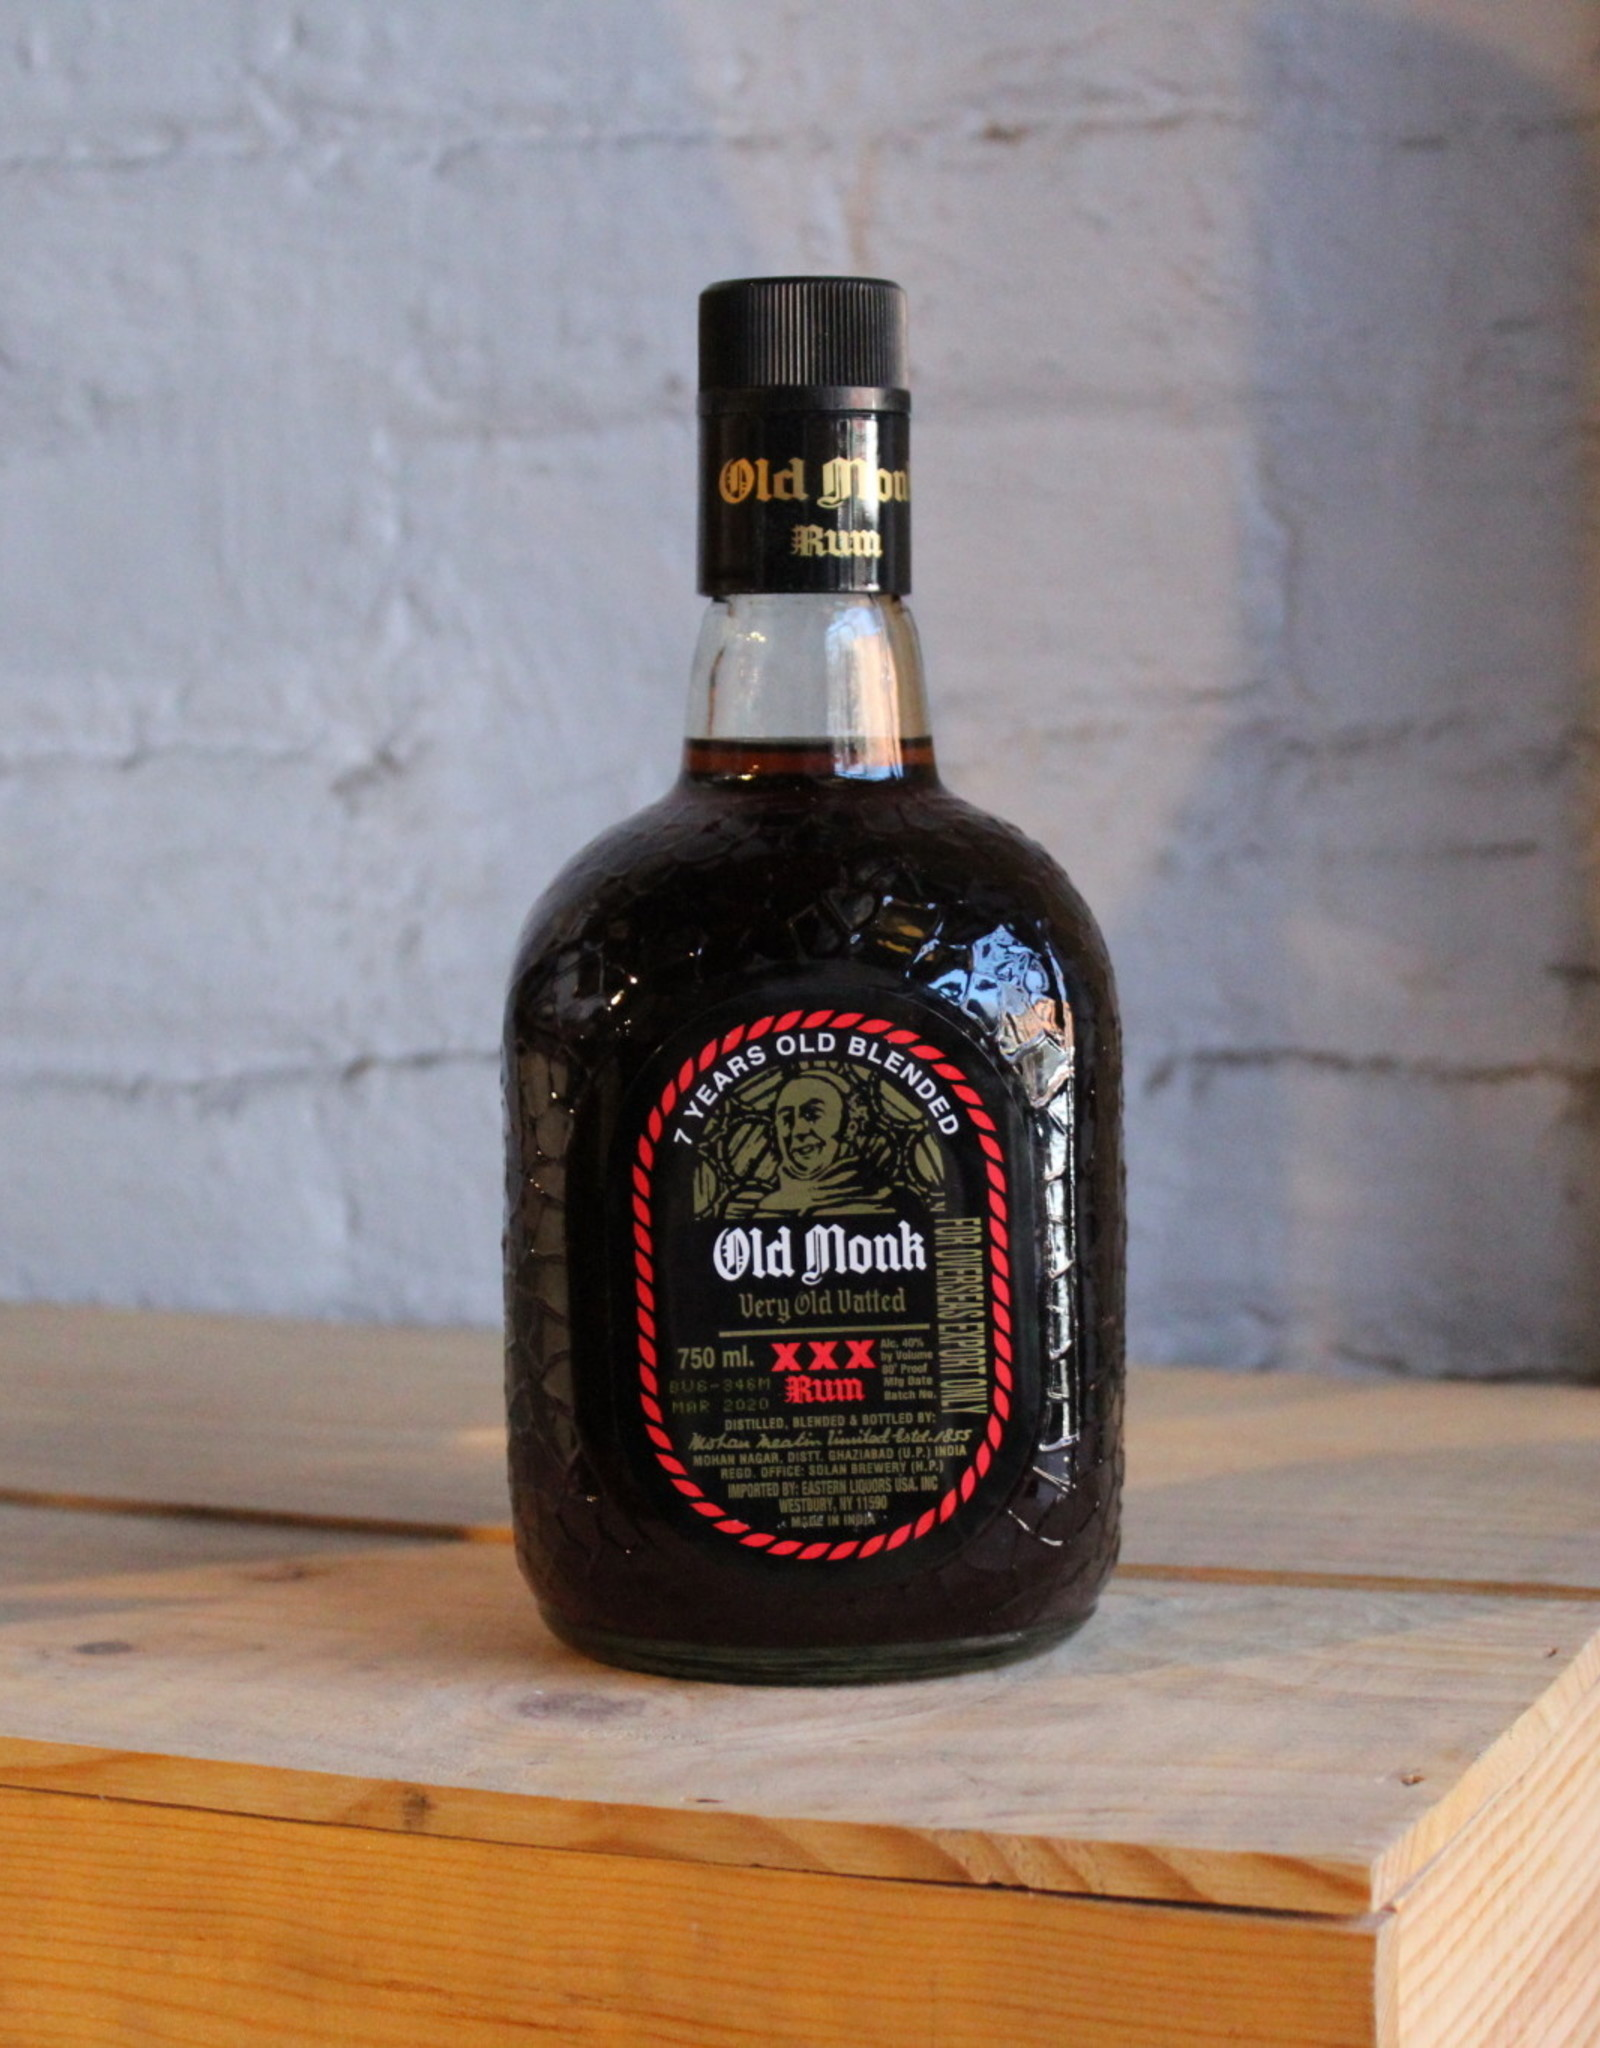 Old Monk 7 Yr Very Old Vatted XXX Rum - Ghaziabad, India (750ml)